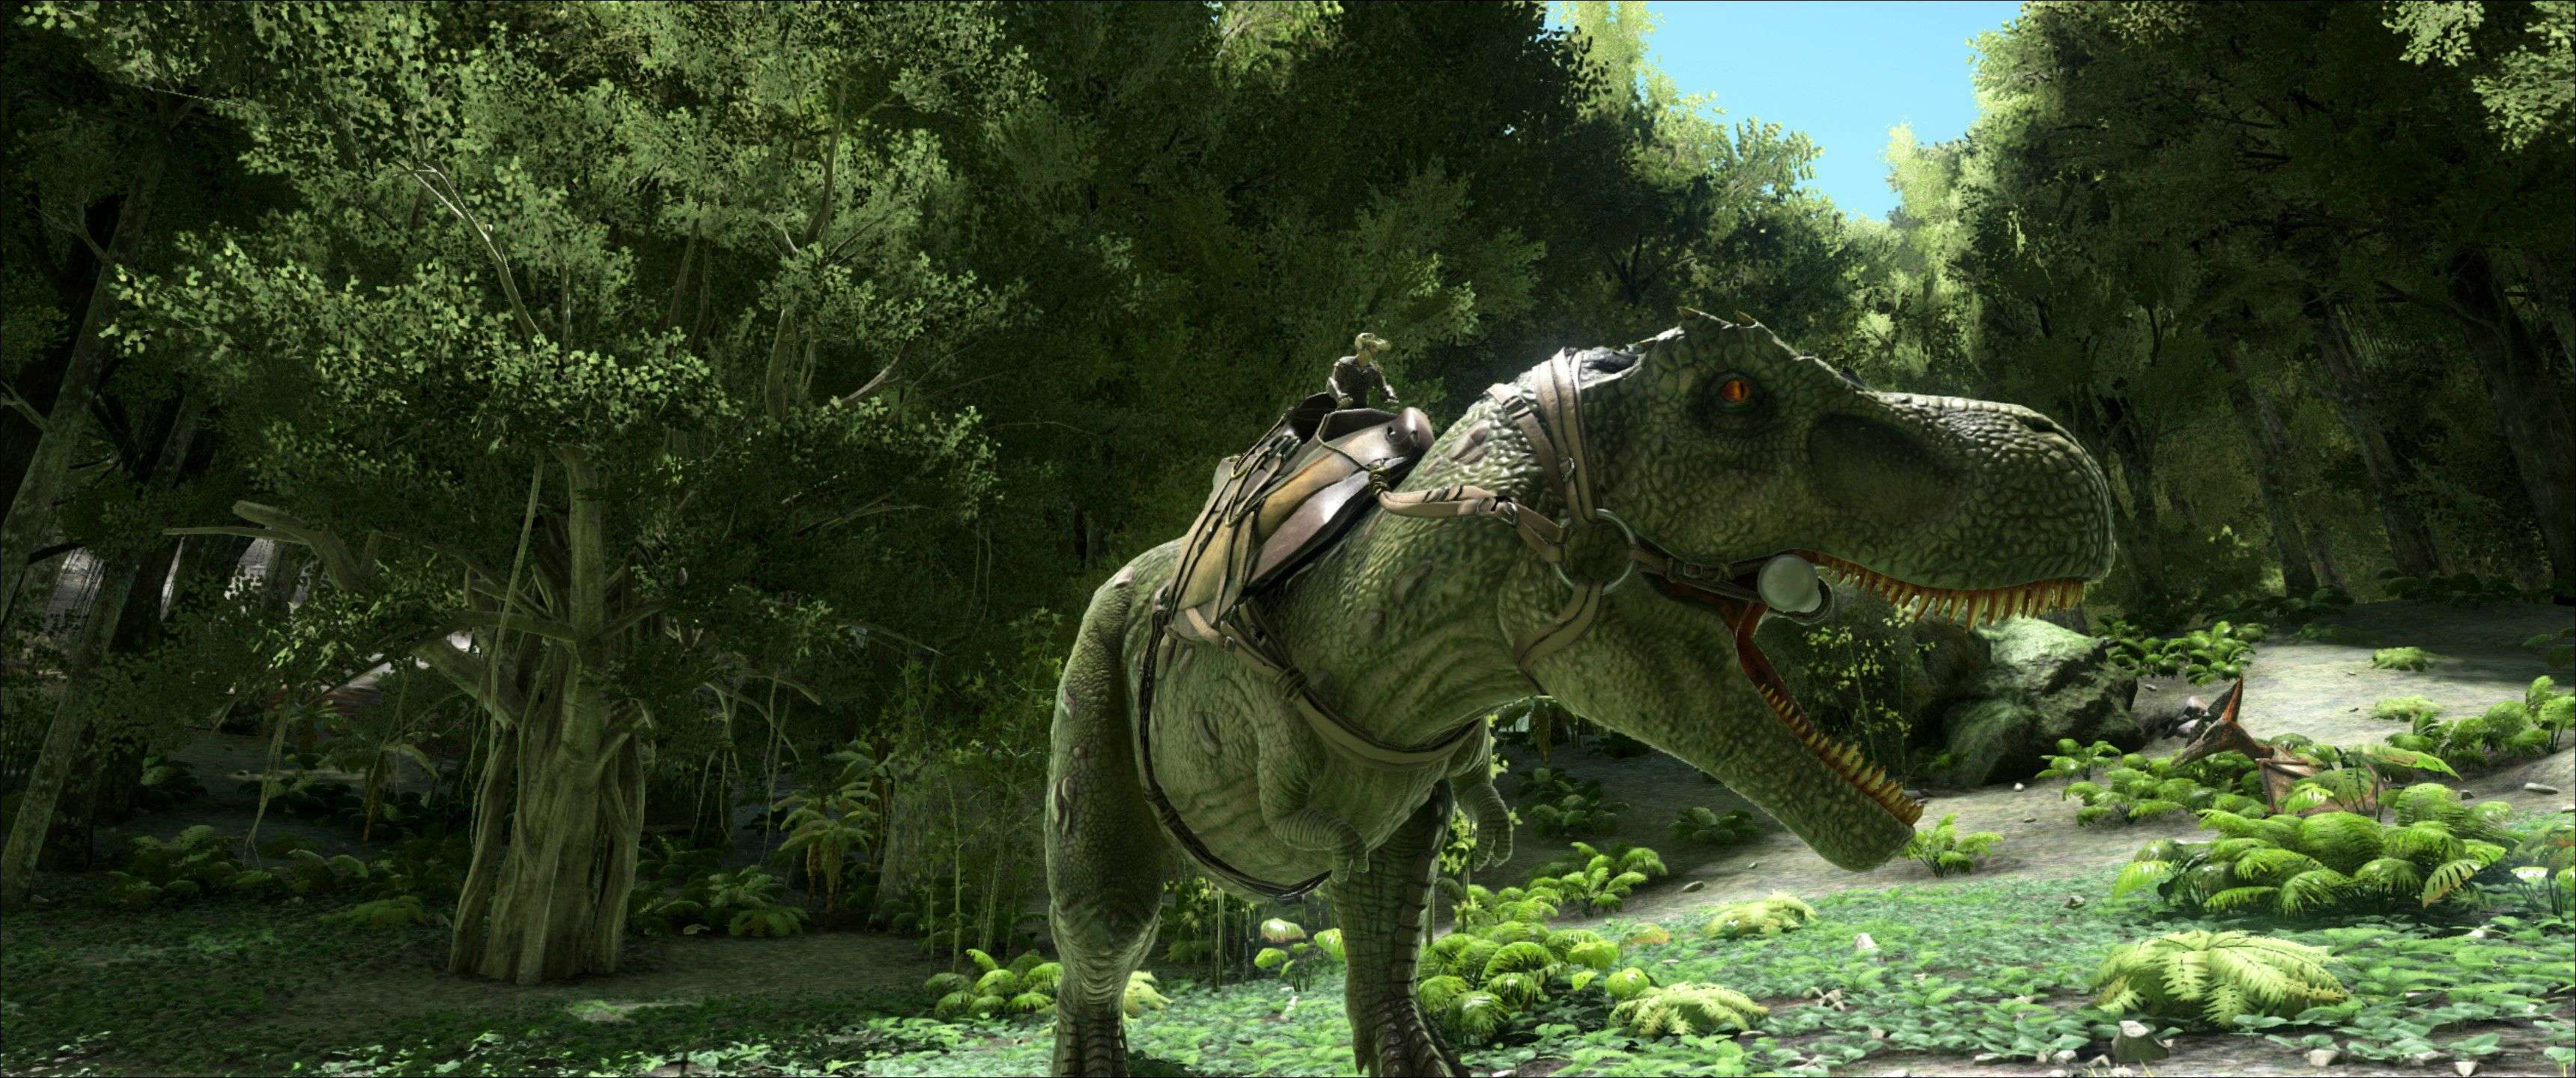 T-Rex with a saddle.